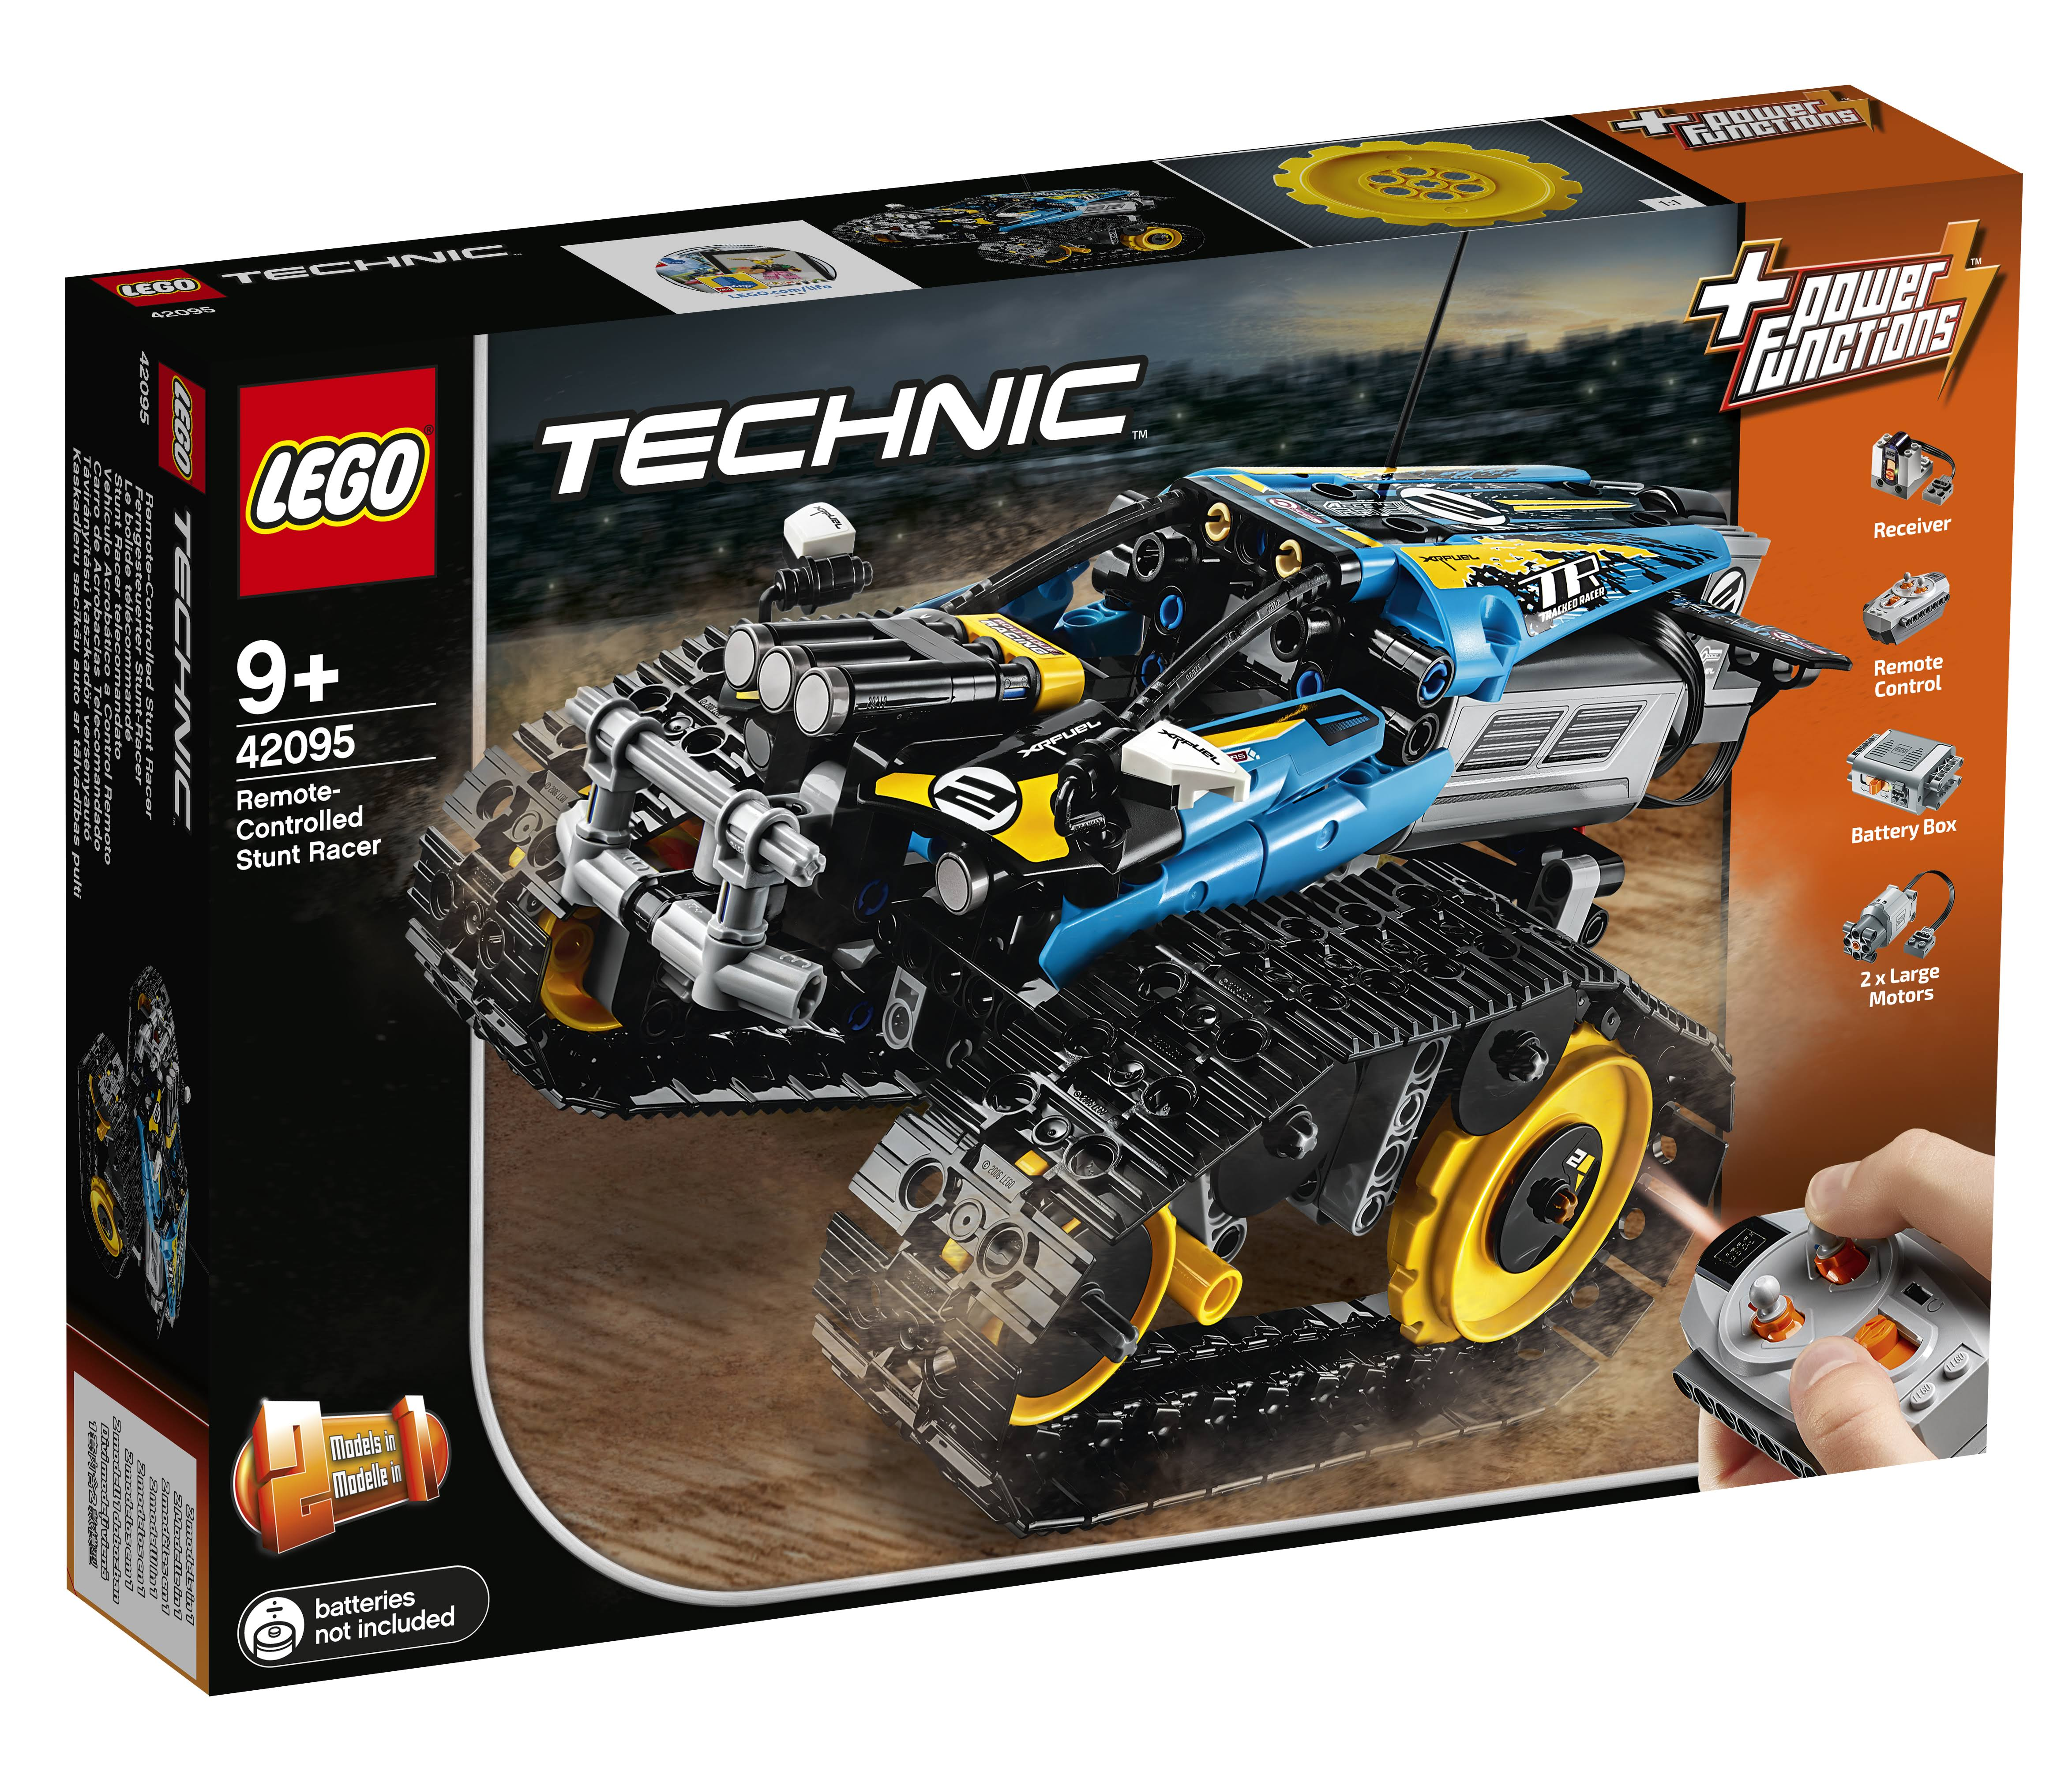 Lego 42095 Technic RC Stunt Racer Building Toy